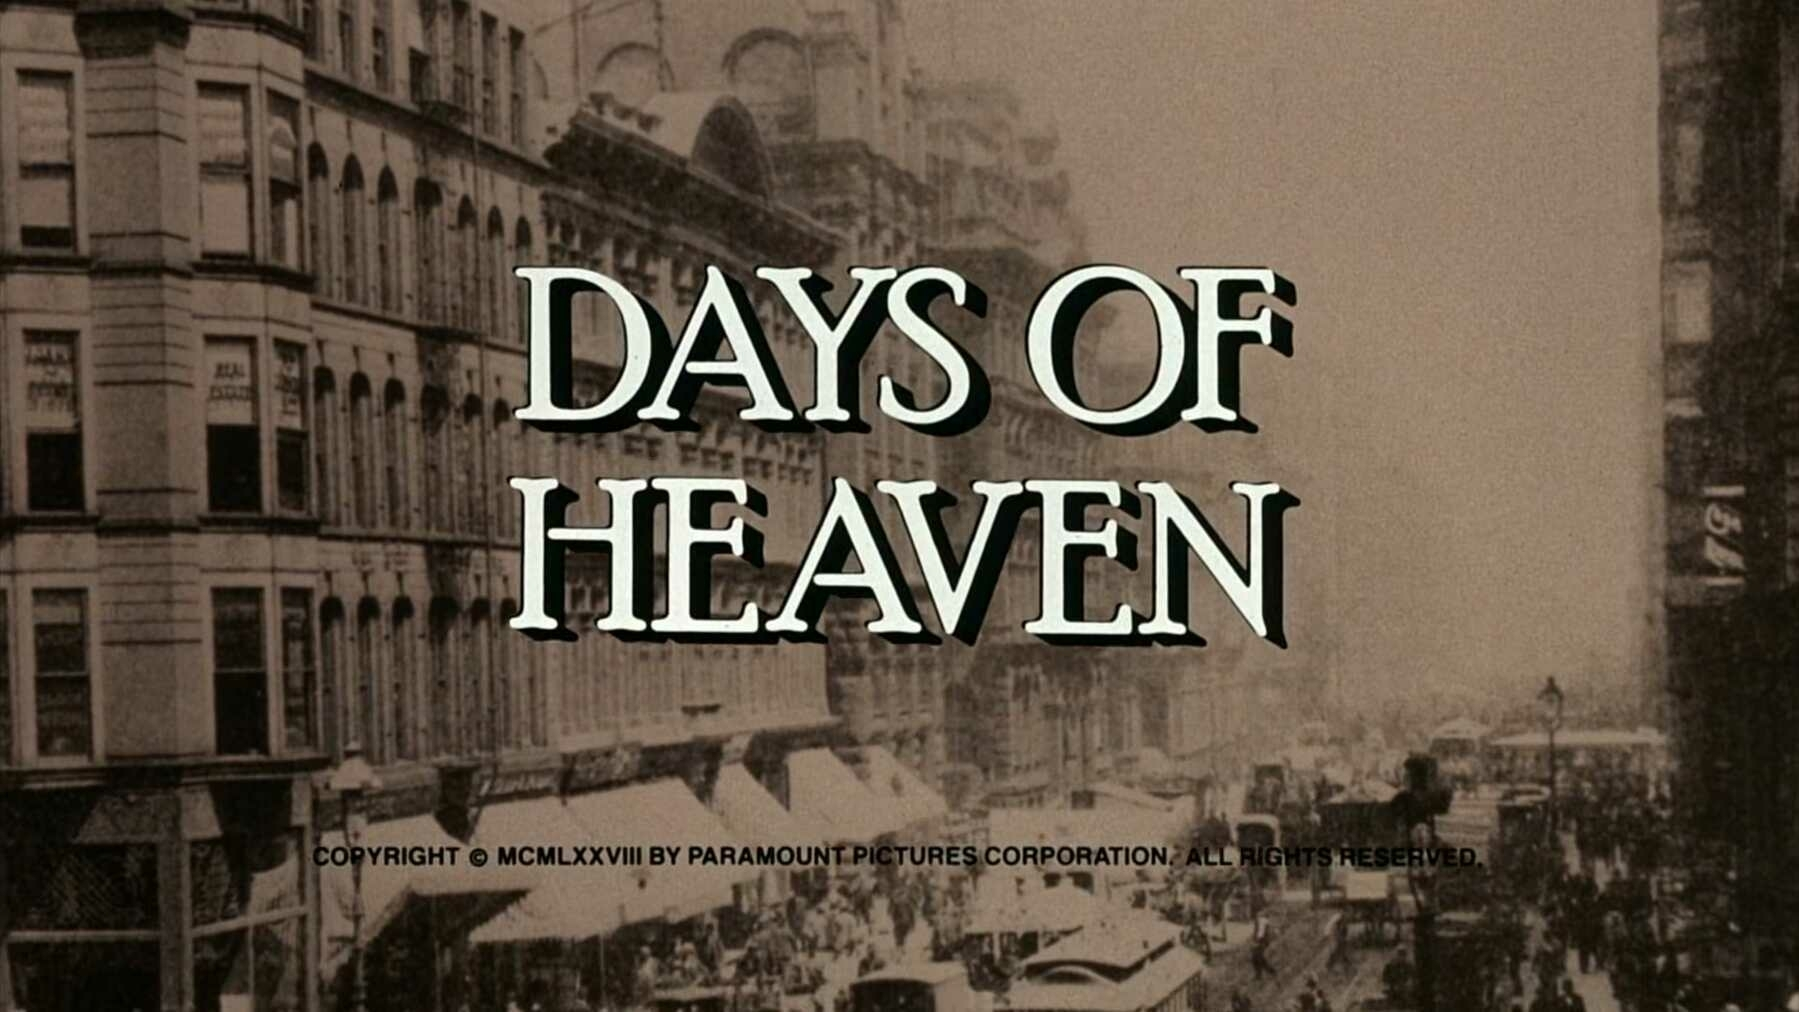 The title card for the film, Days of Heaven, featuring an old photo of a city street behind text.